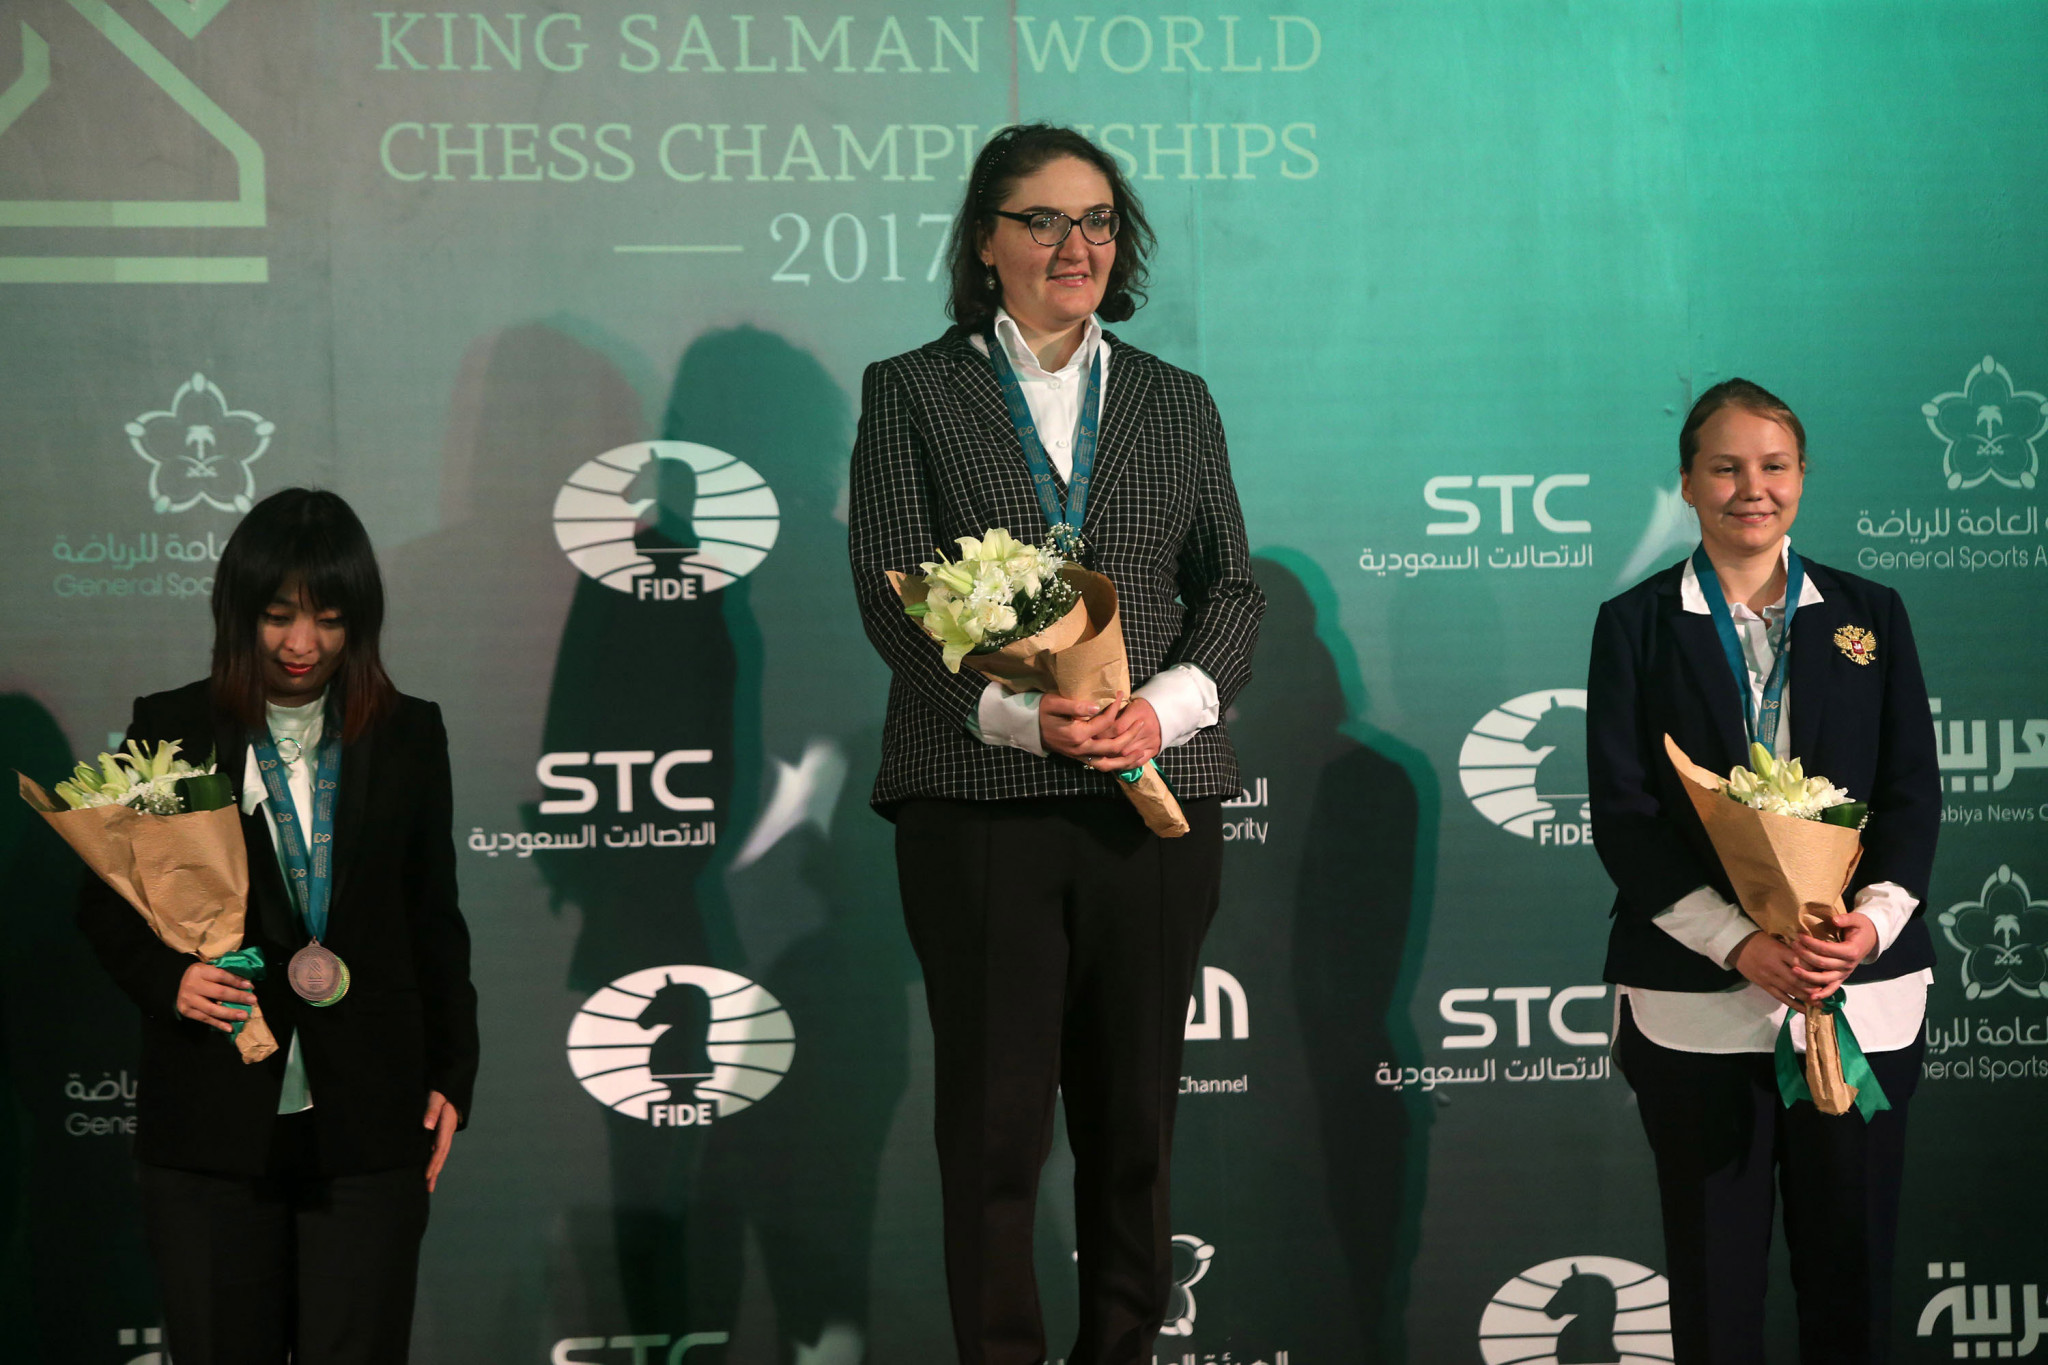 Nana Dzagnidze won the women's World Blitz title in Riyadh ©Getty Images